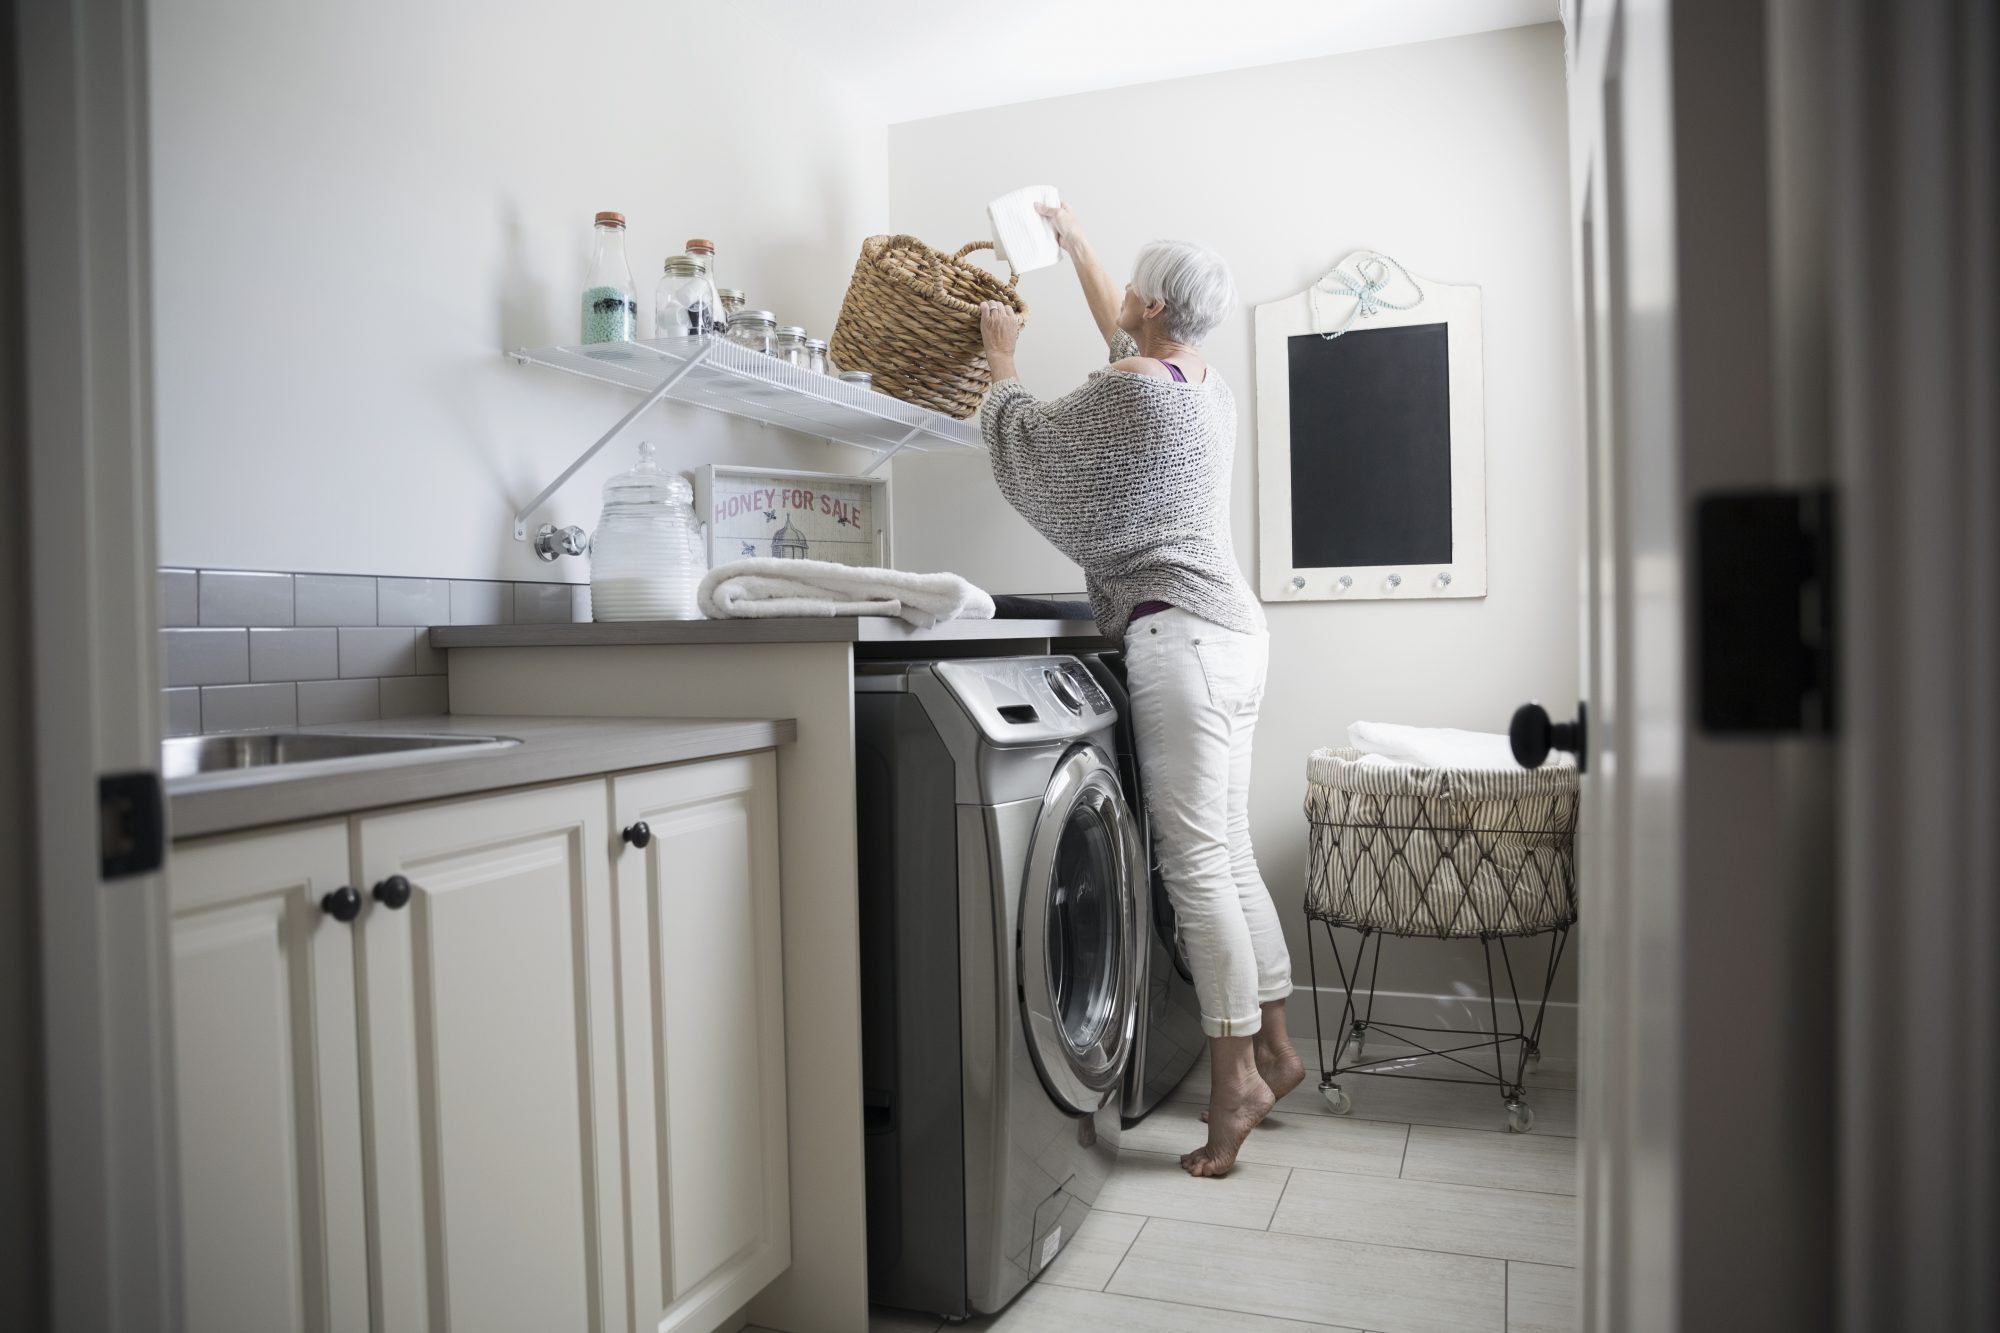 The Correct Way to Use Your Dryer Will Leave You With Less Wrinkles